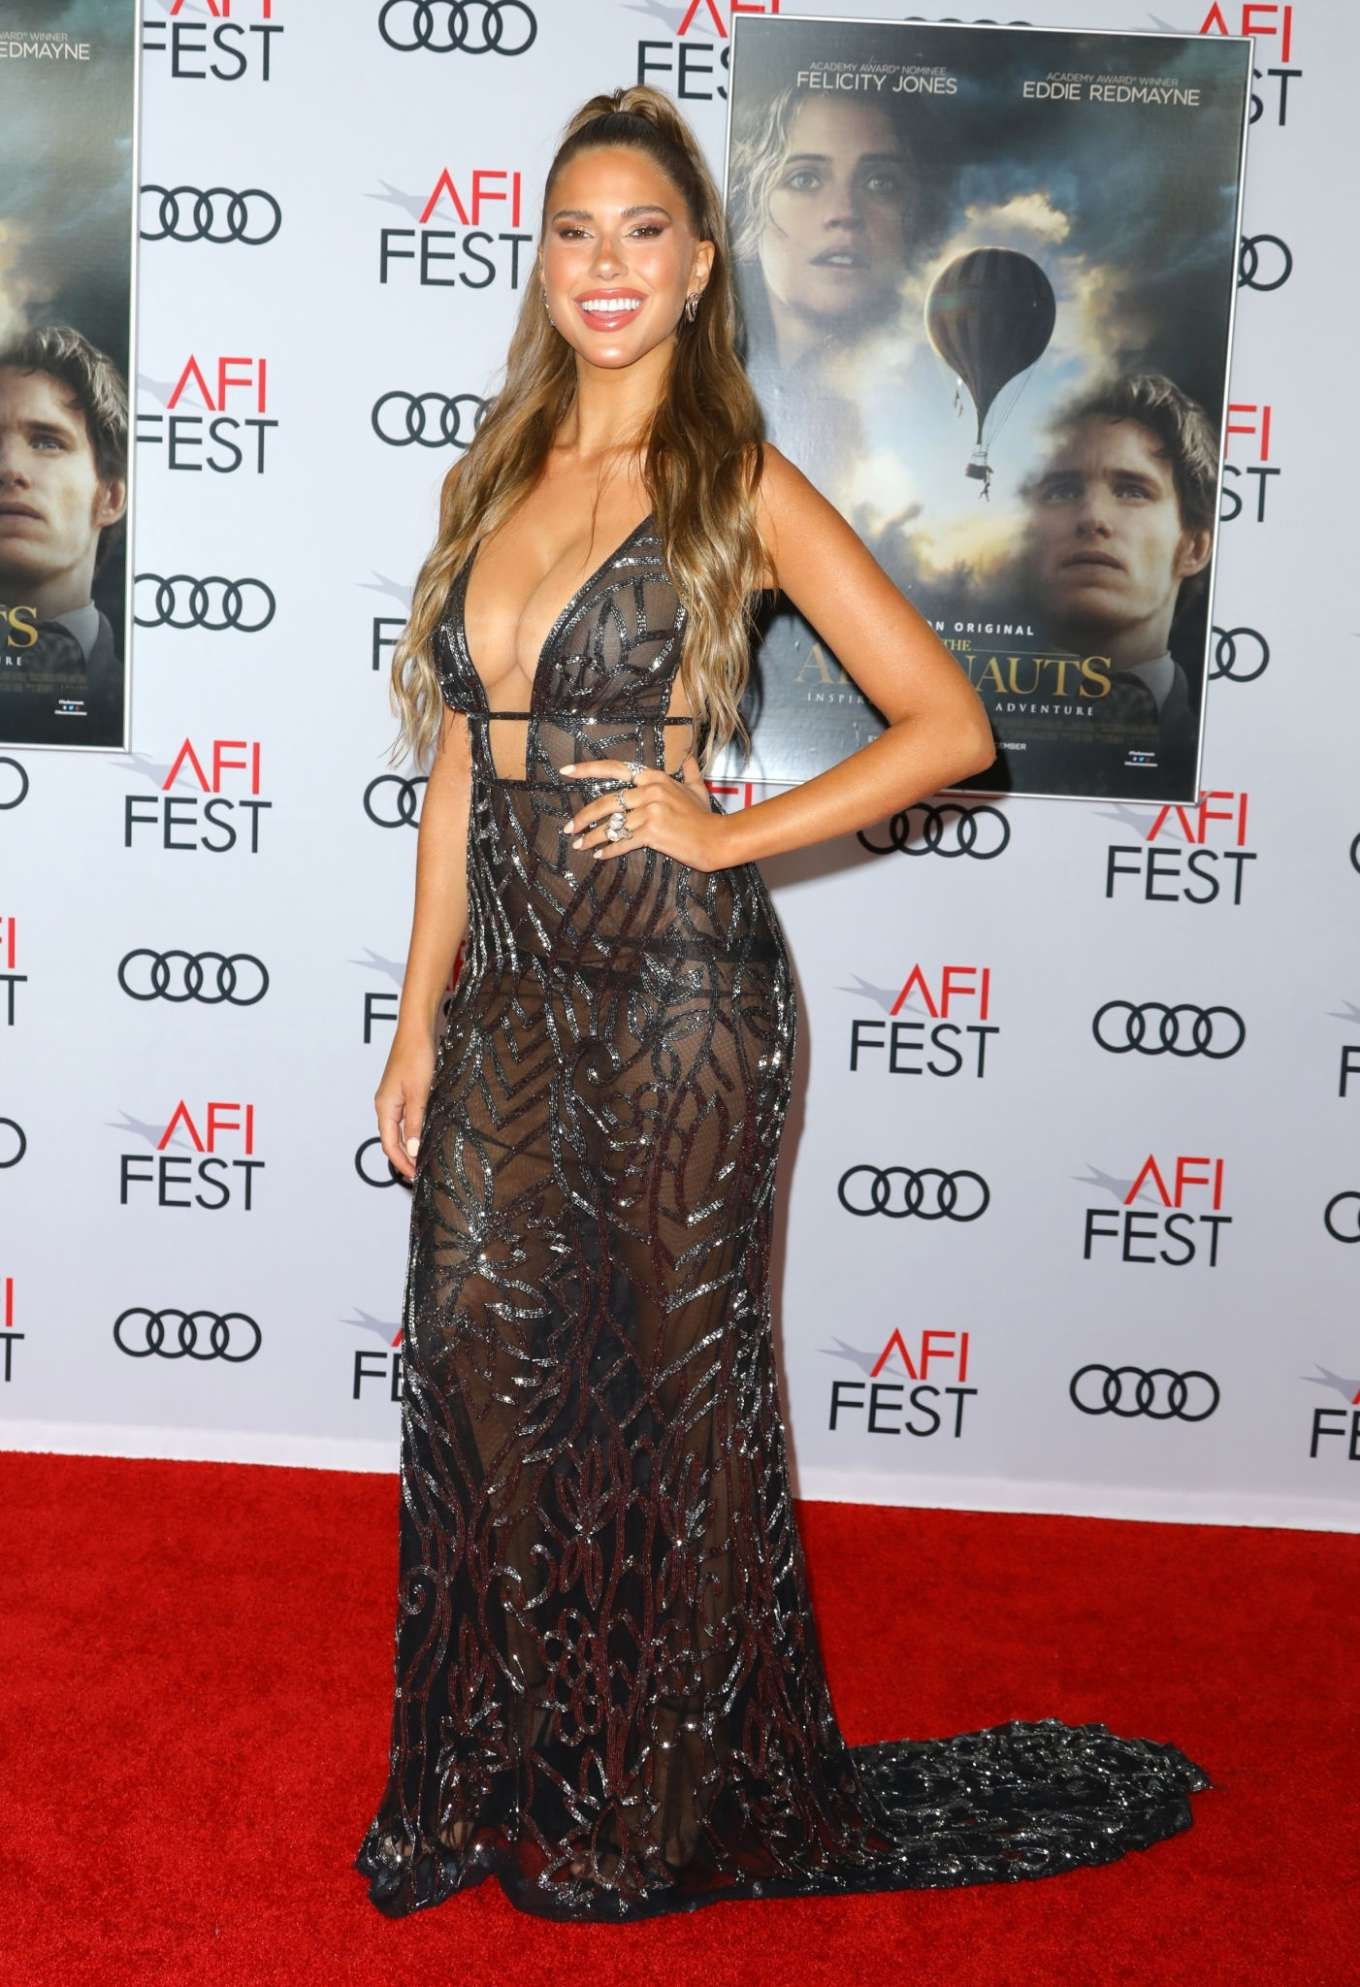 Kara Del Toro 2019 : Kara del Toro – The Aeronauts Screening – AFI Fest in Los Angeles-04